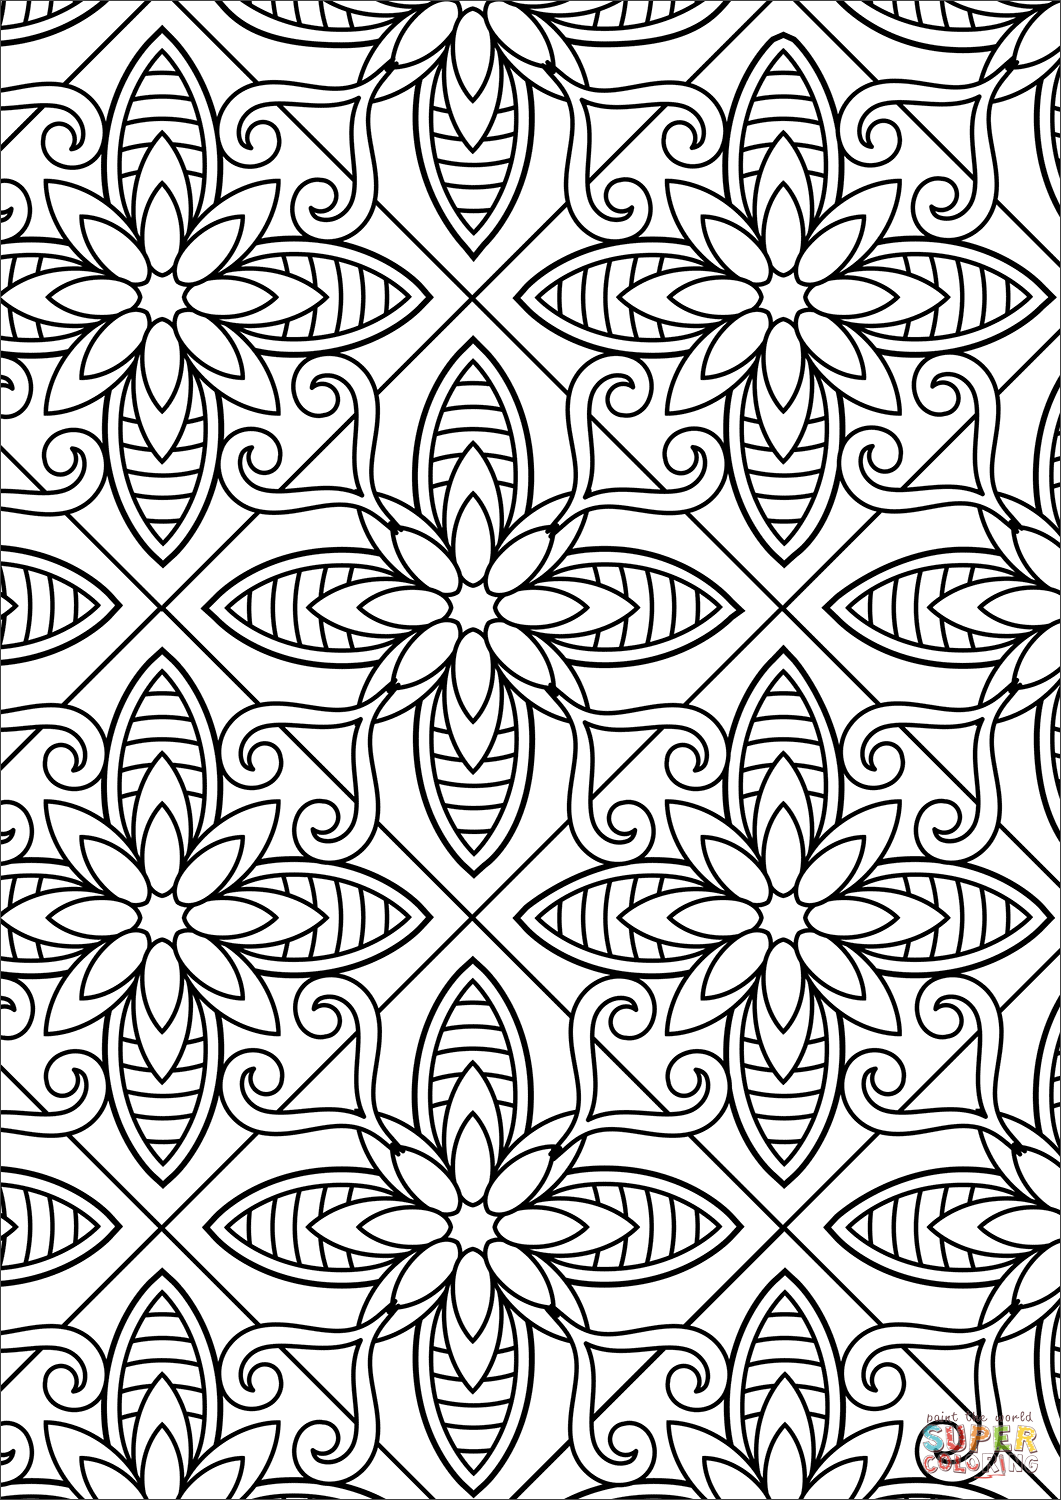 coloring pattern pages coloring pattern pages coloring pattern pages